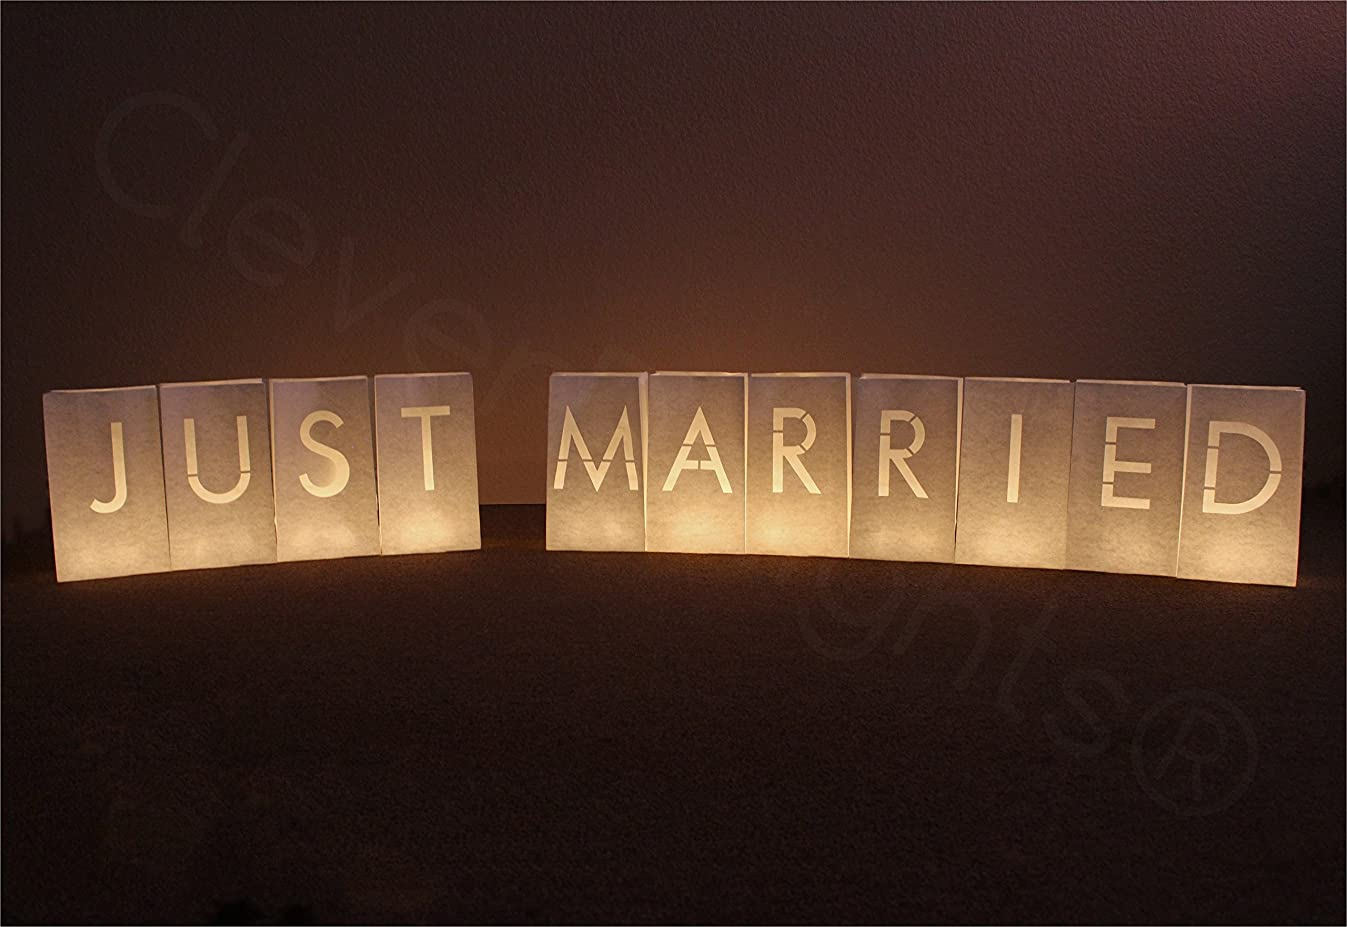 CleverDelights White Luminary Bags - Just Married - 22 Bags (2 Full Sets) - Flame Resistant Candle Bag